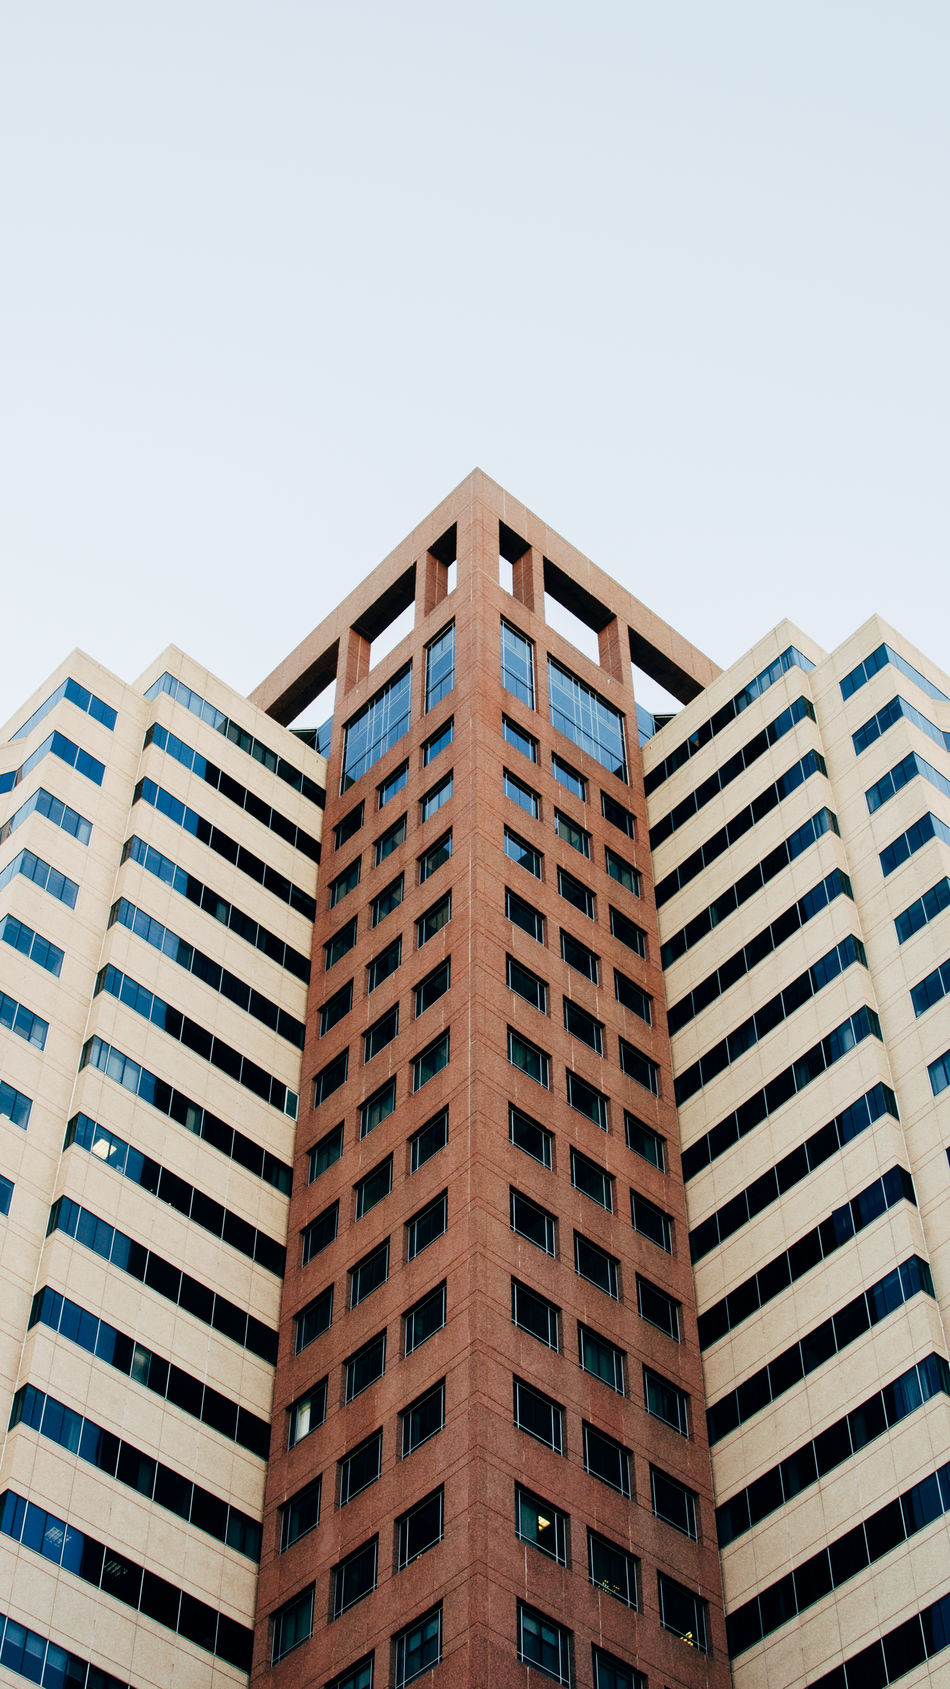 Building Building Exterior Cape Town City City Life South Africa Tower Urban